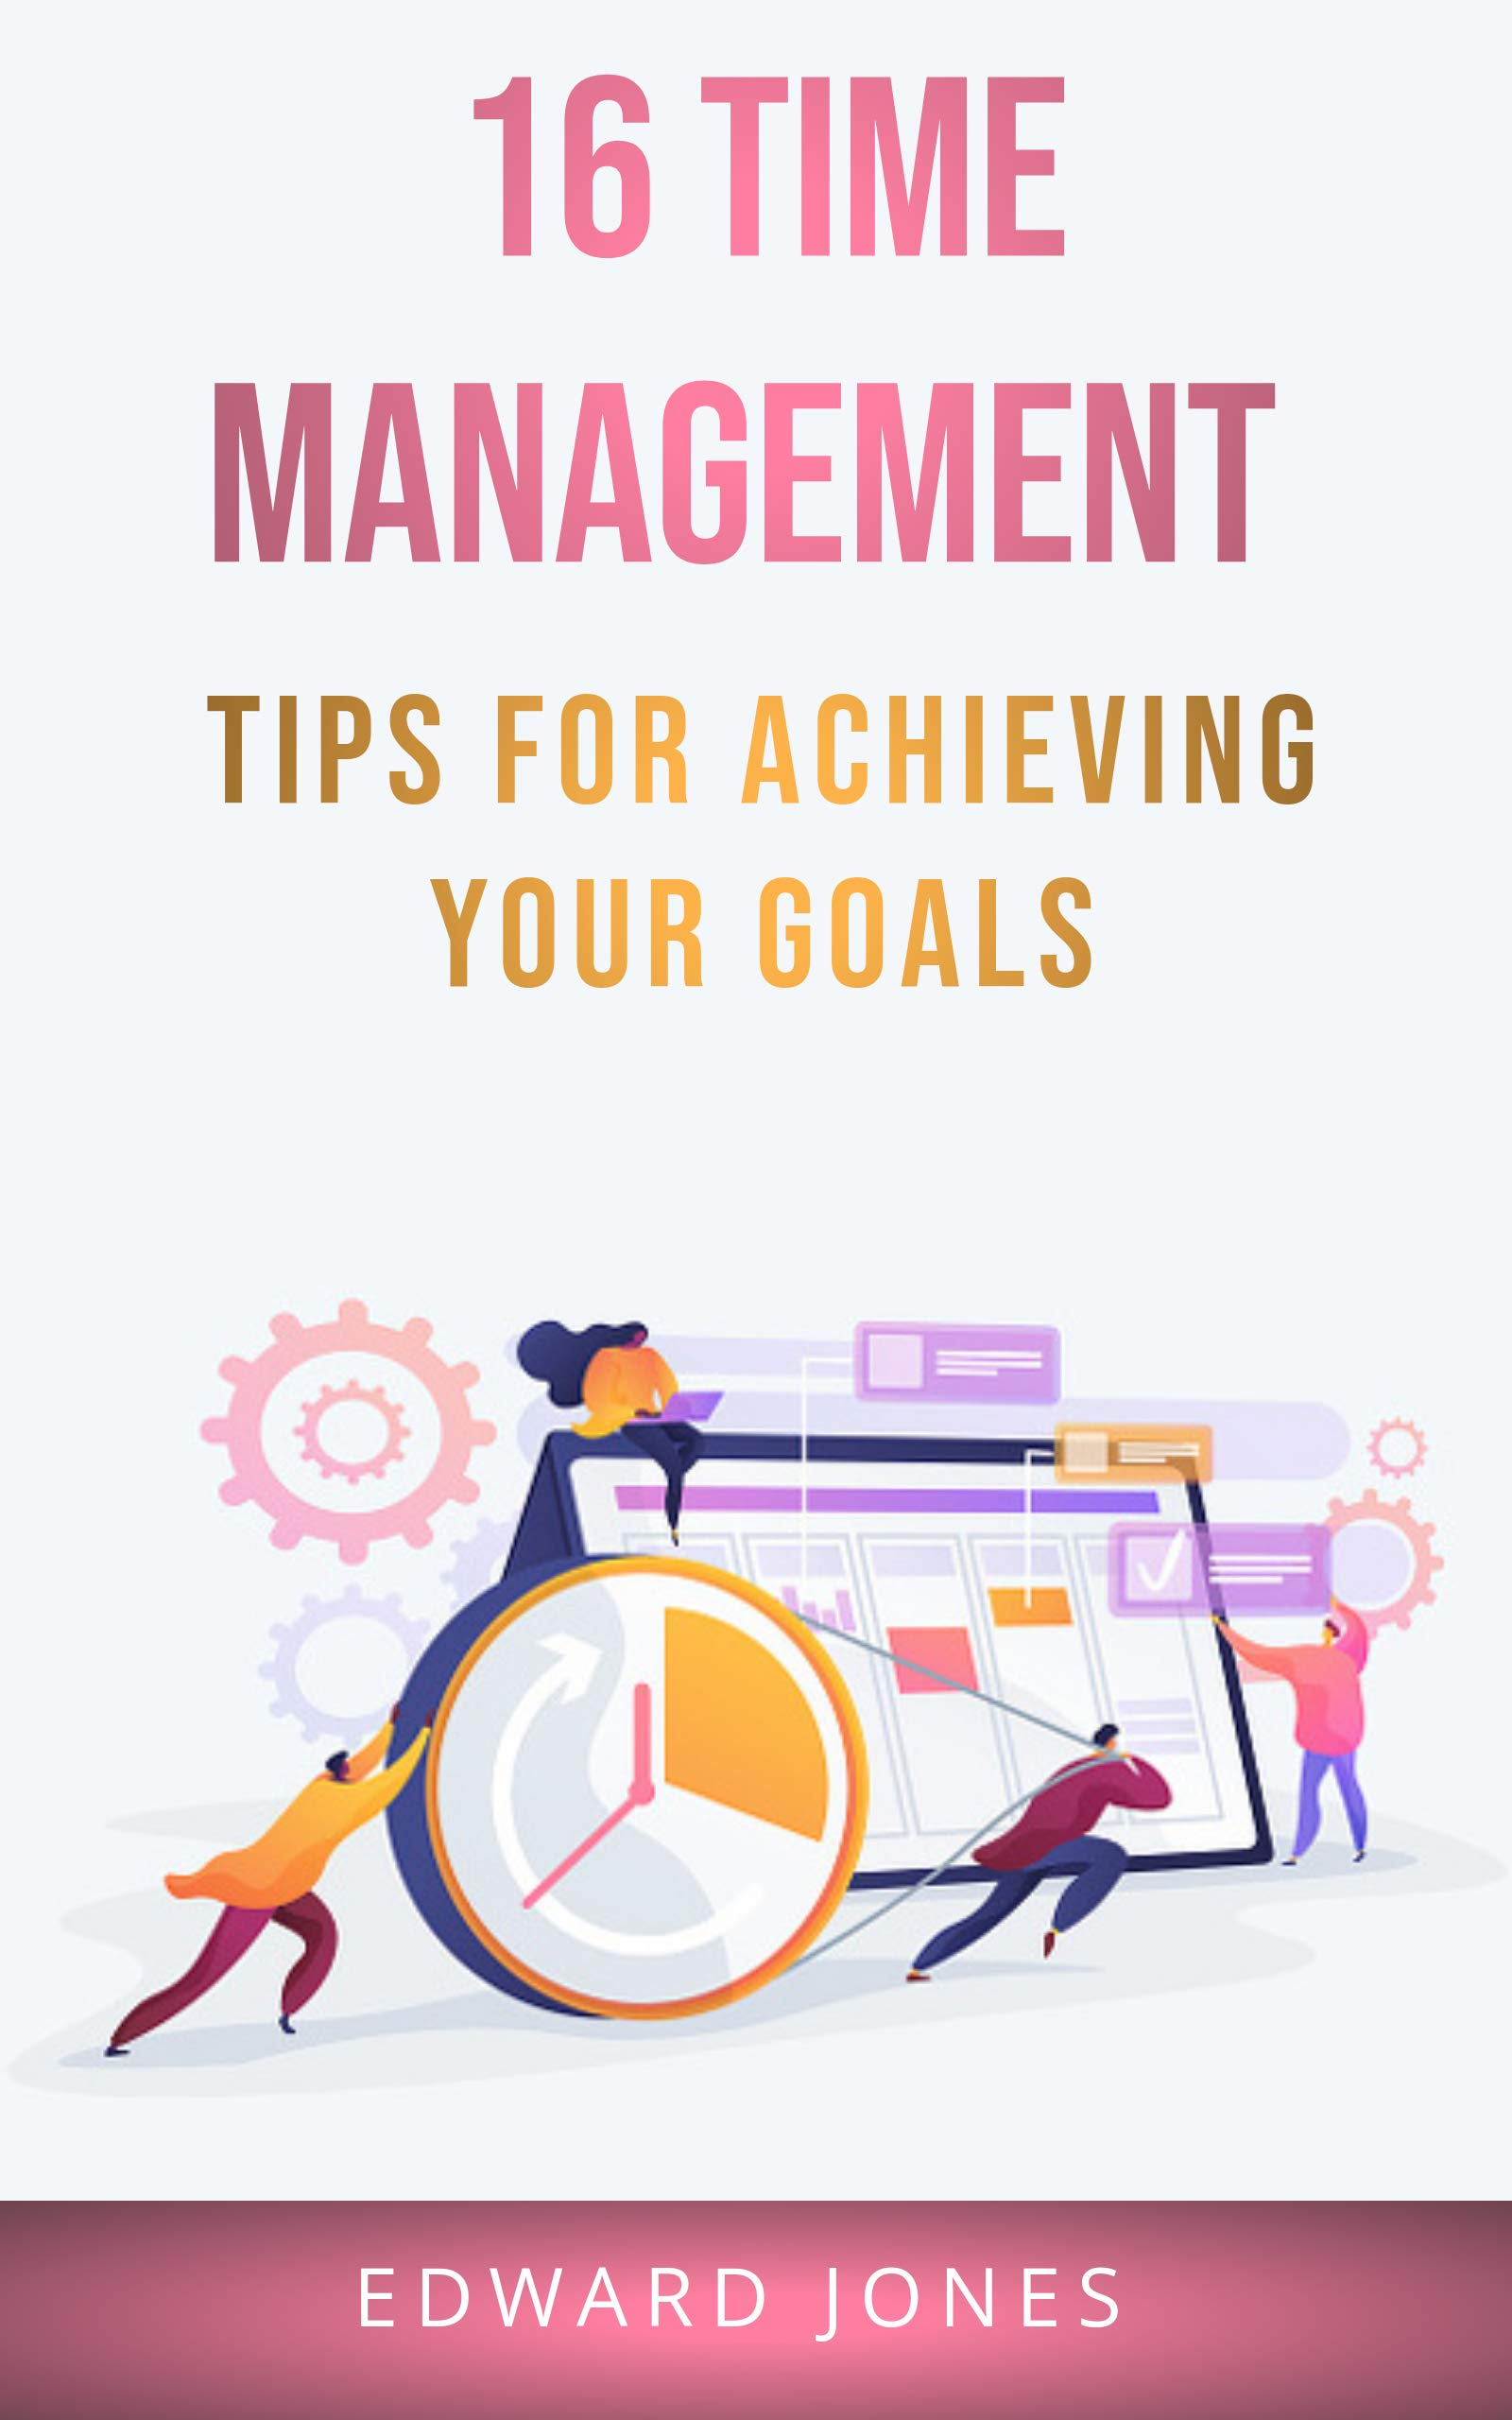 16 Time Management Tips for Achieving Your Goals: Set your best goals and create a clear step-by-step action plan to achieve them